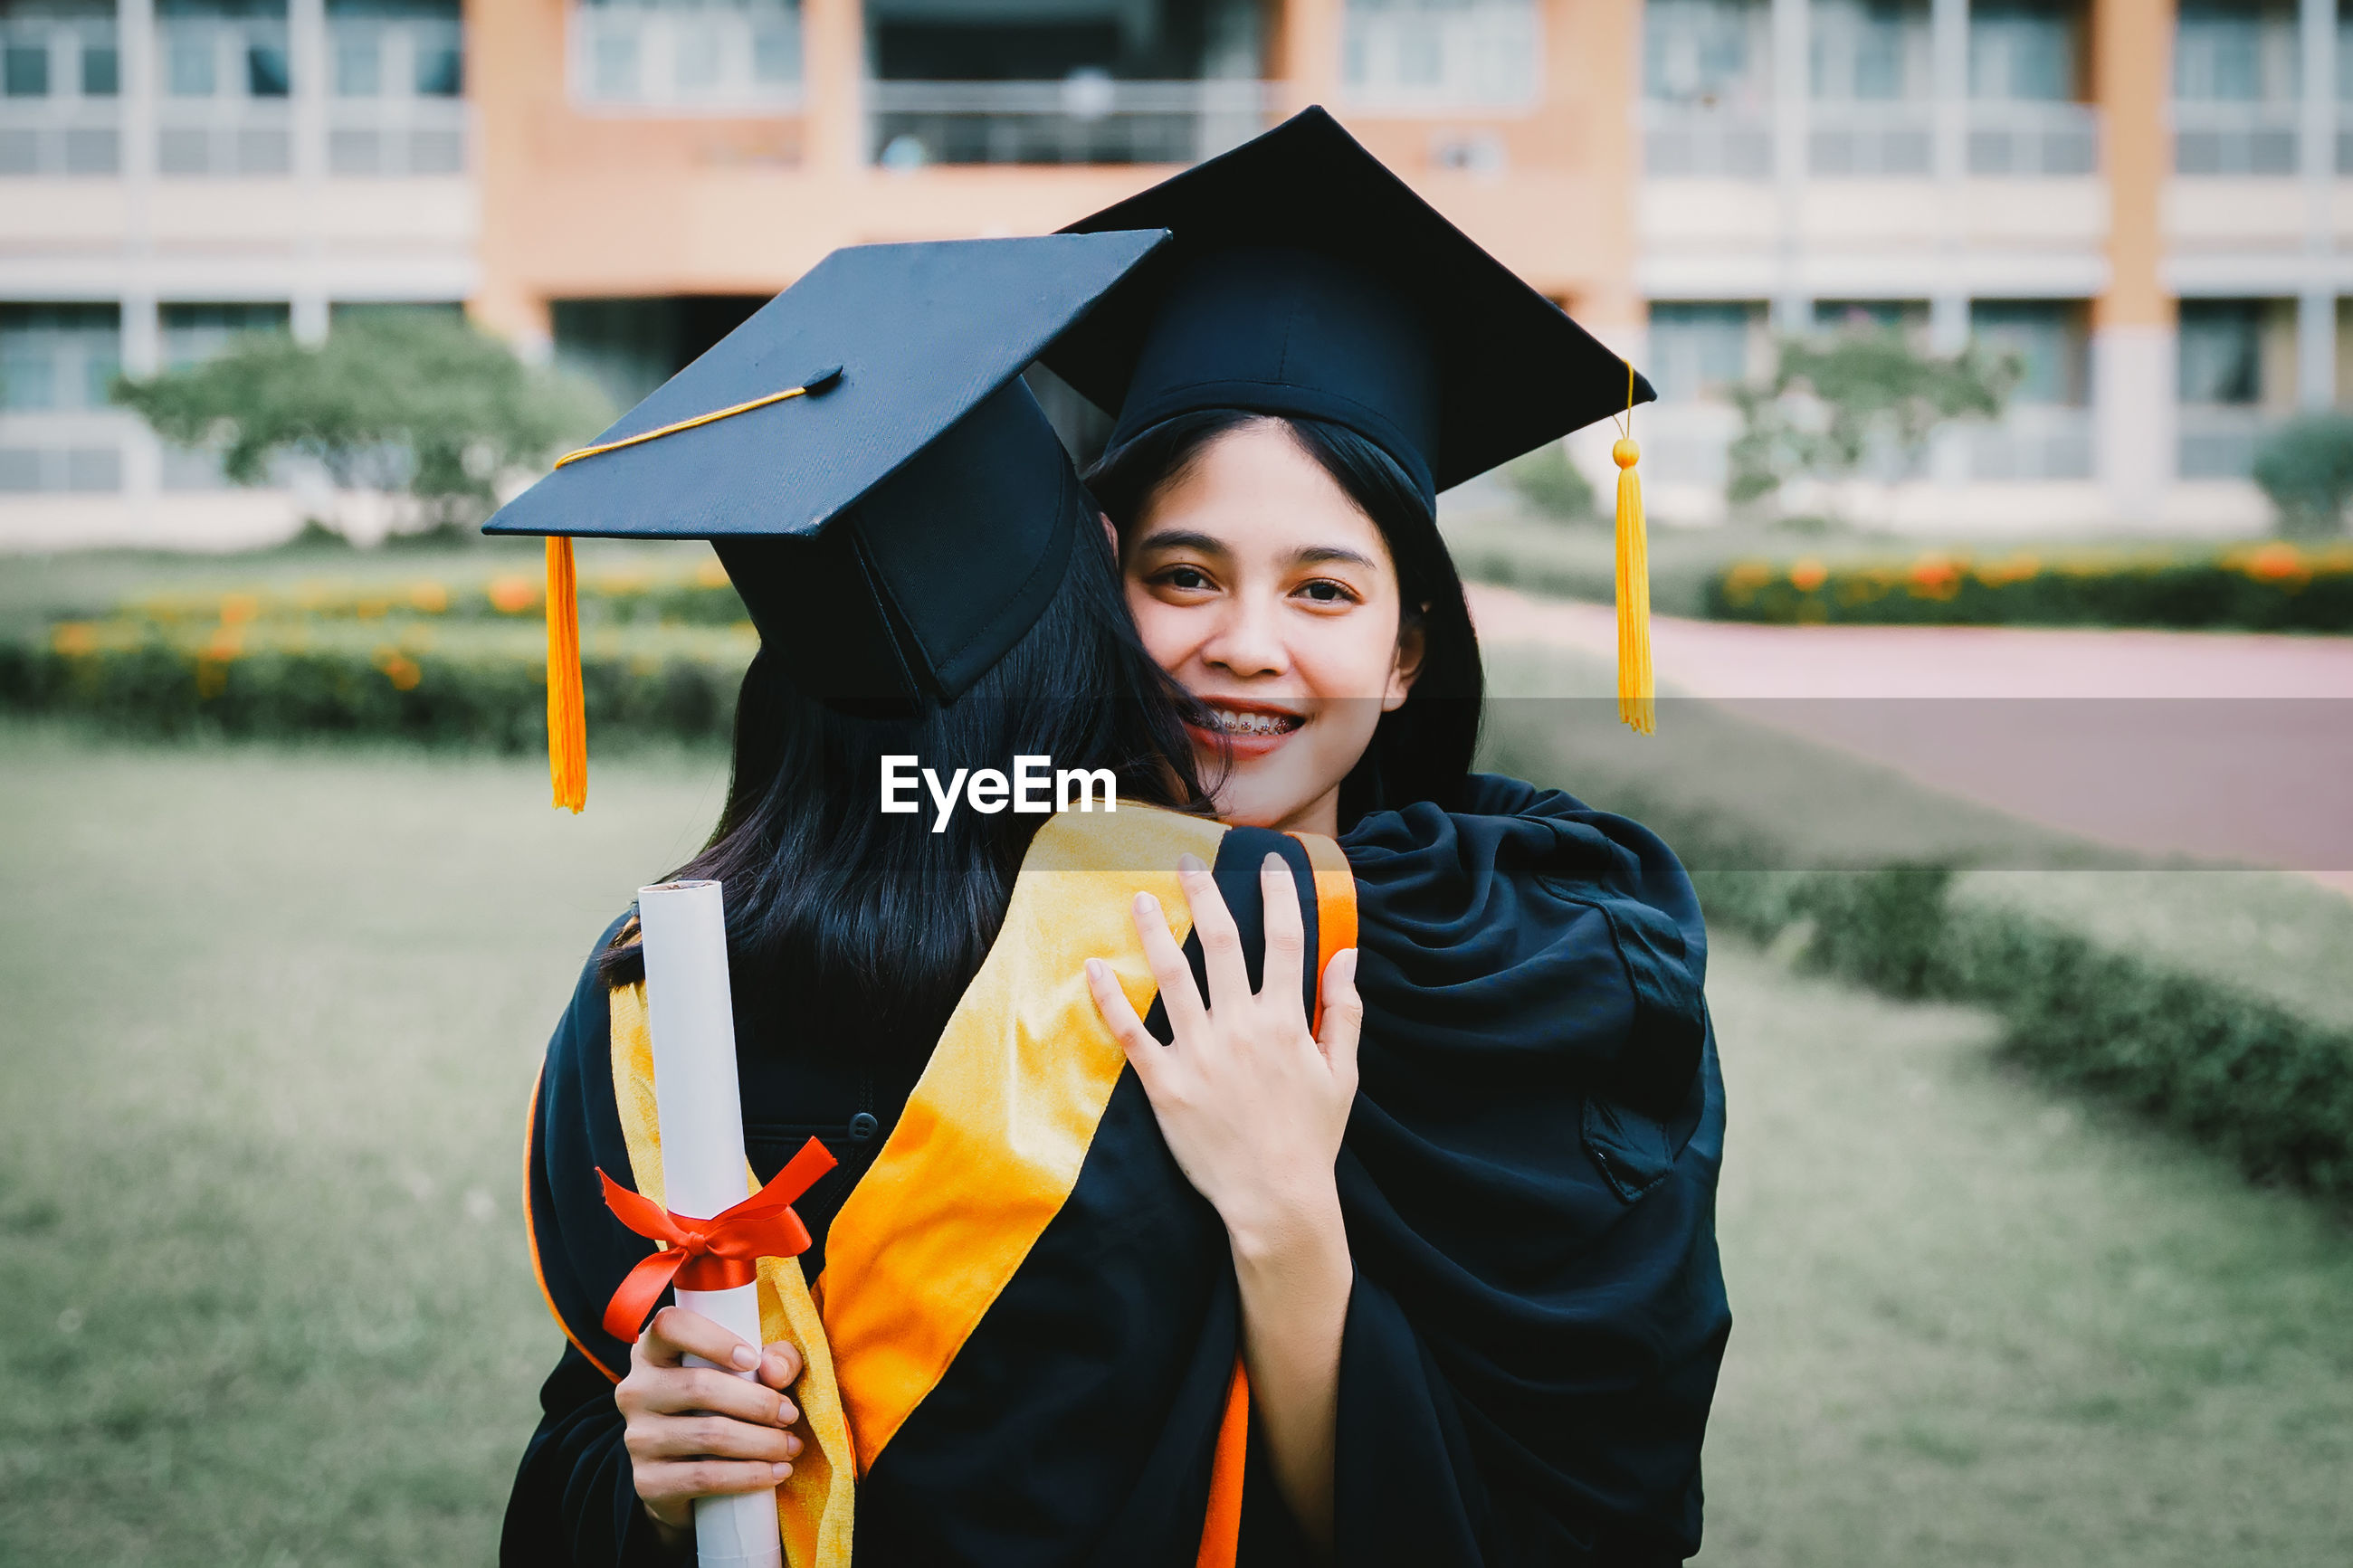 Portrait of young woman wearing graduation gown embracing friend at lawn